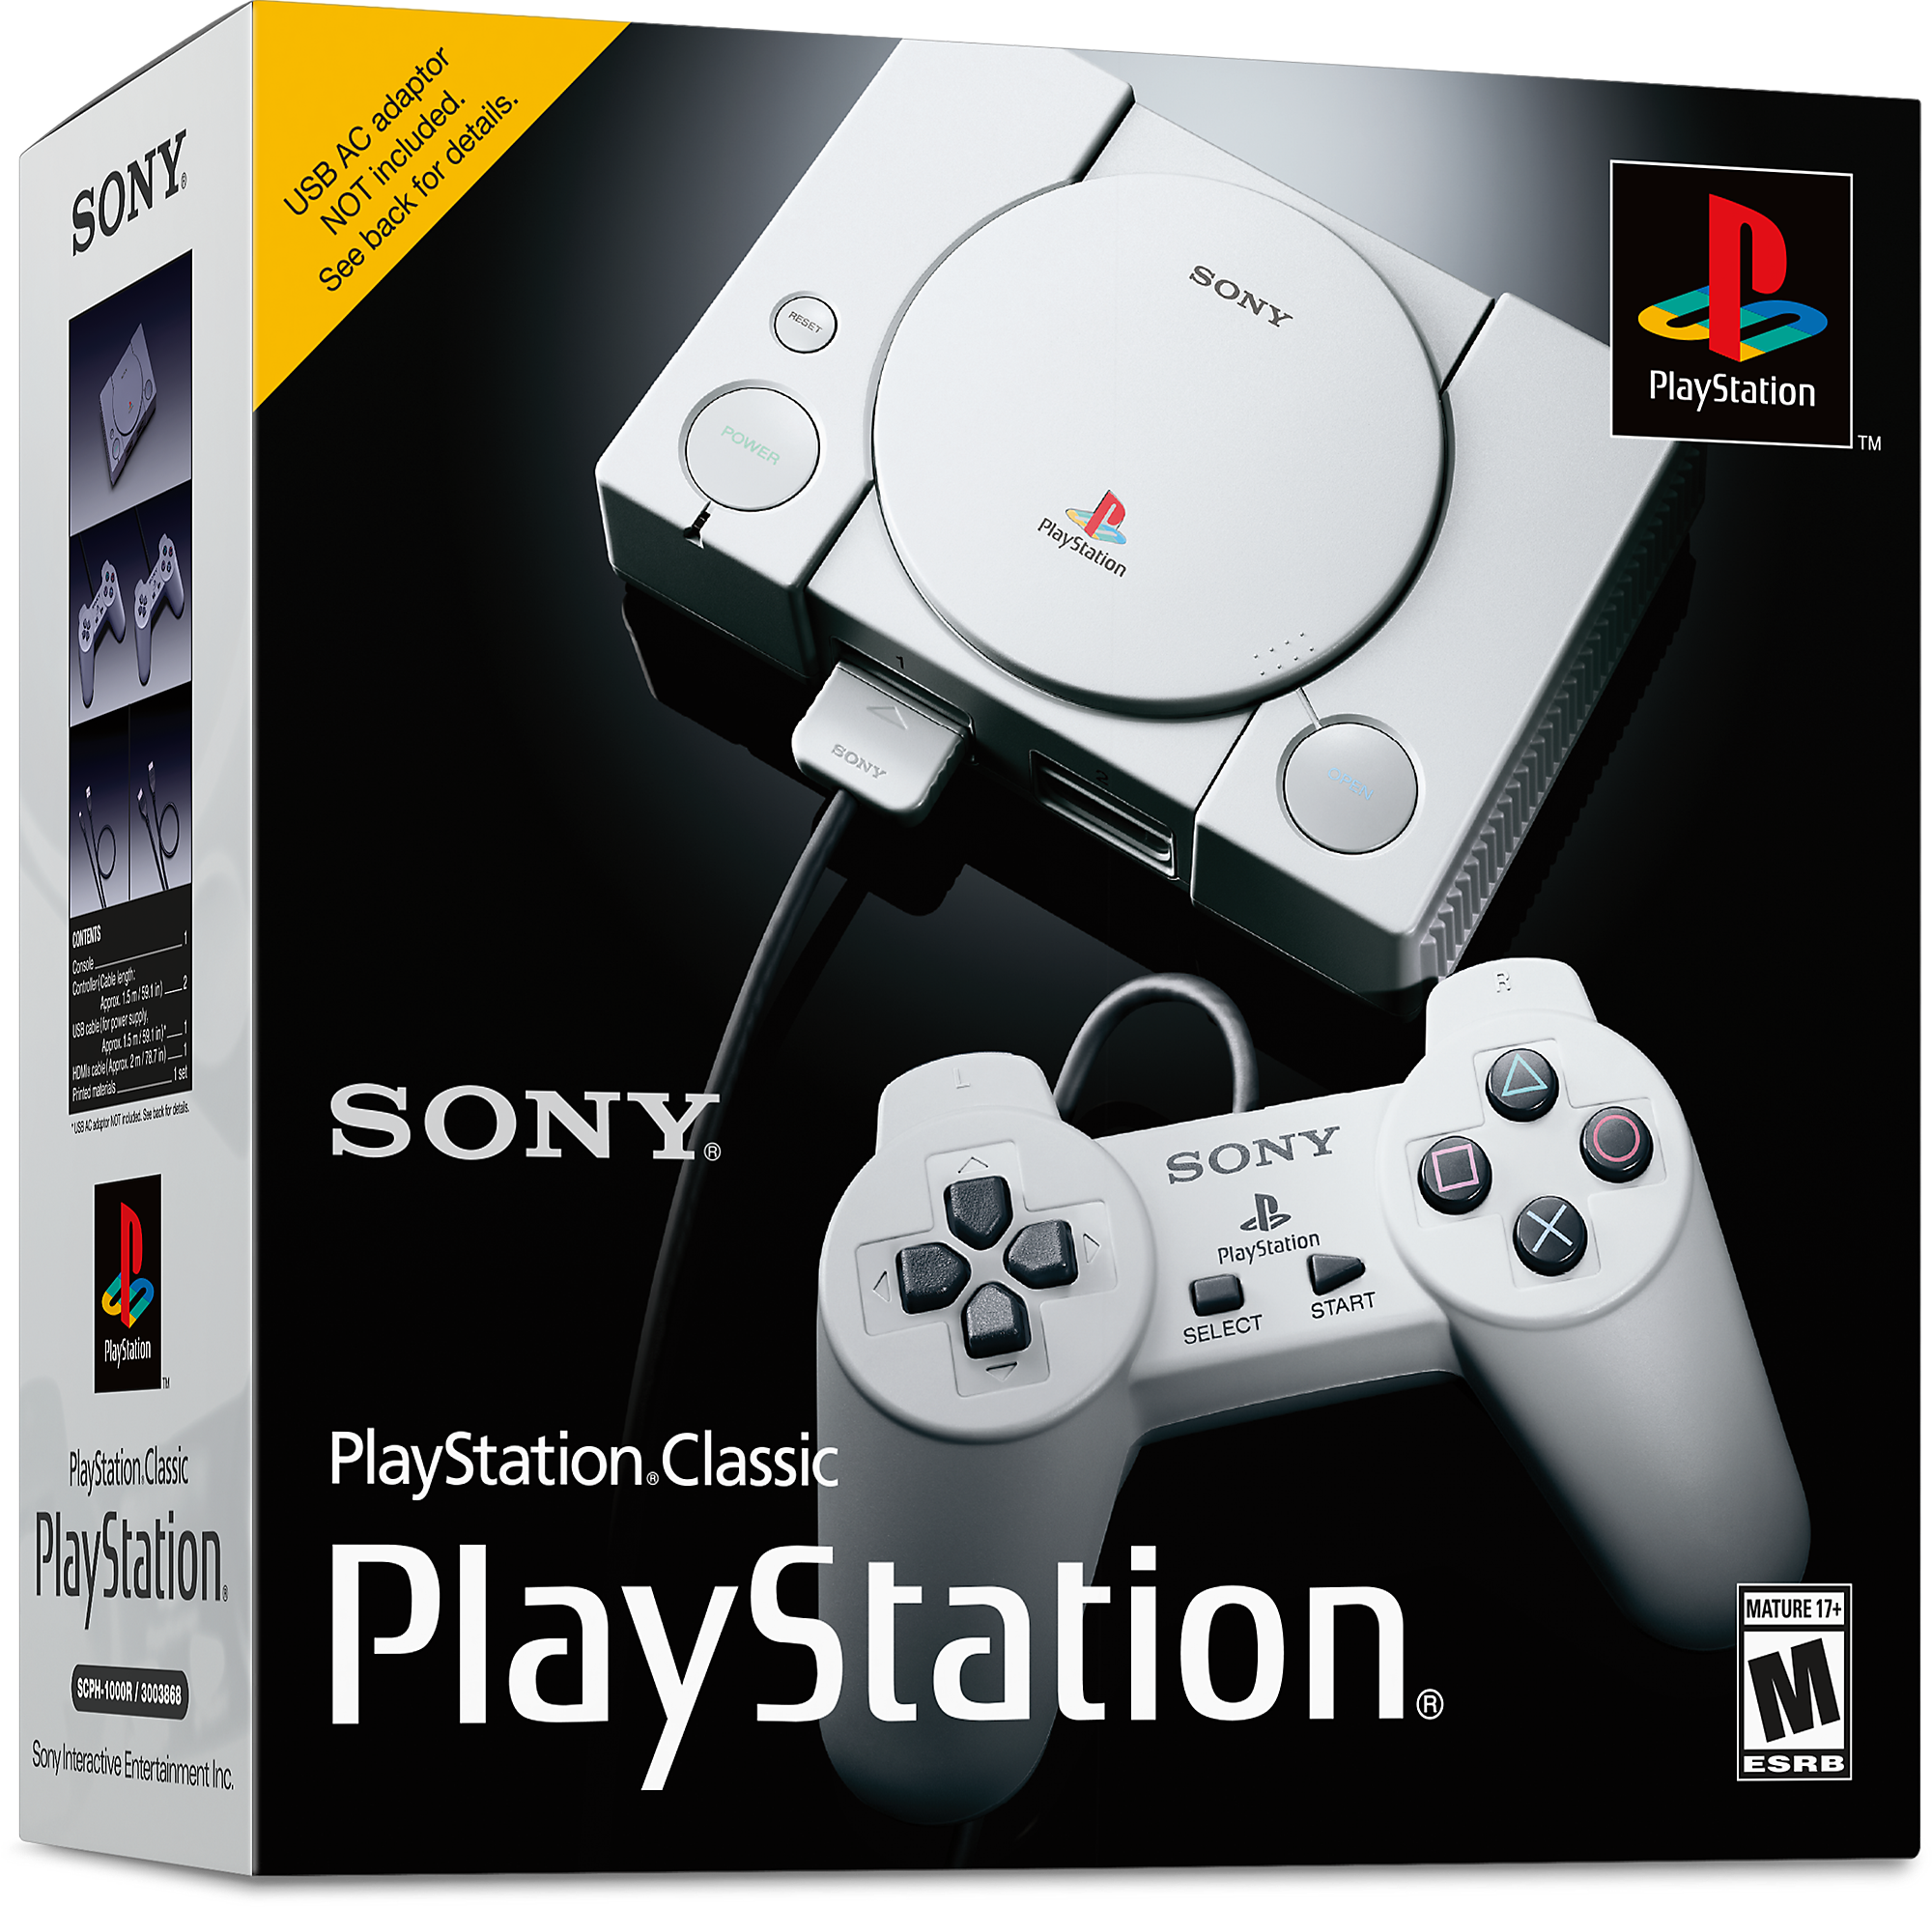 Playstation Classic: Now is the time to grab one